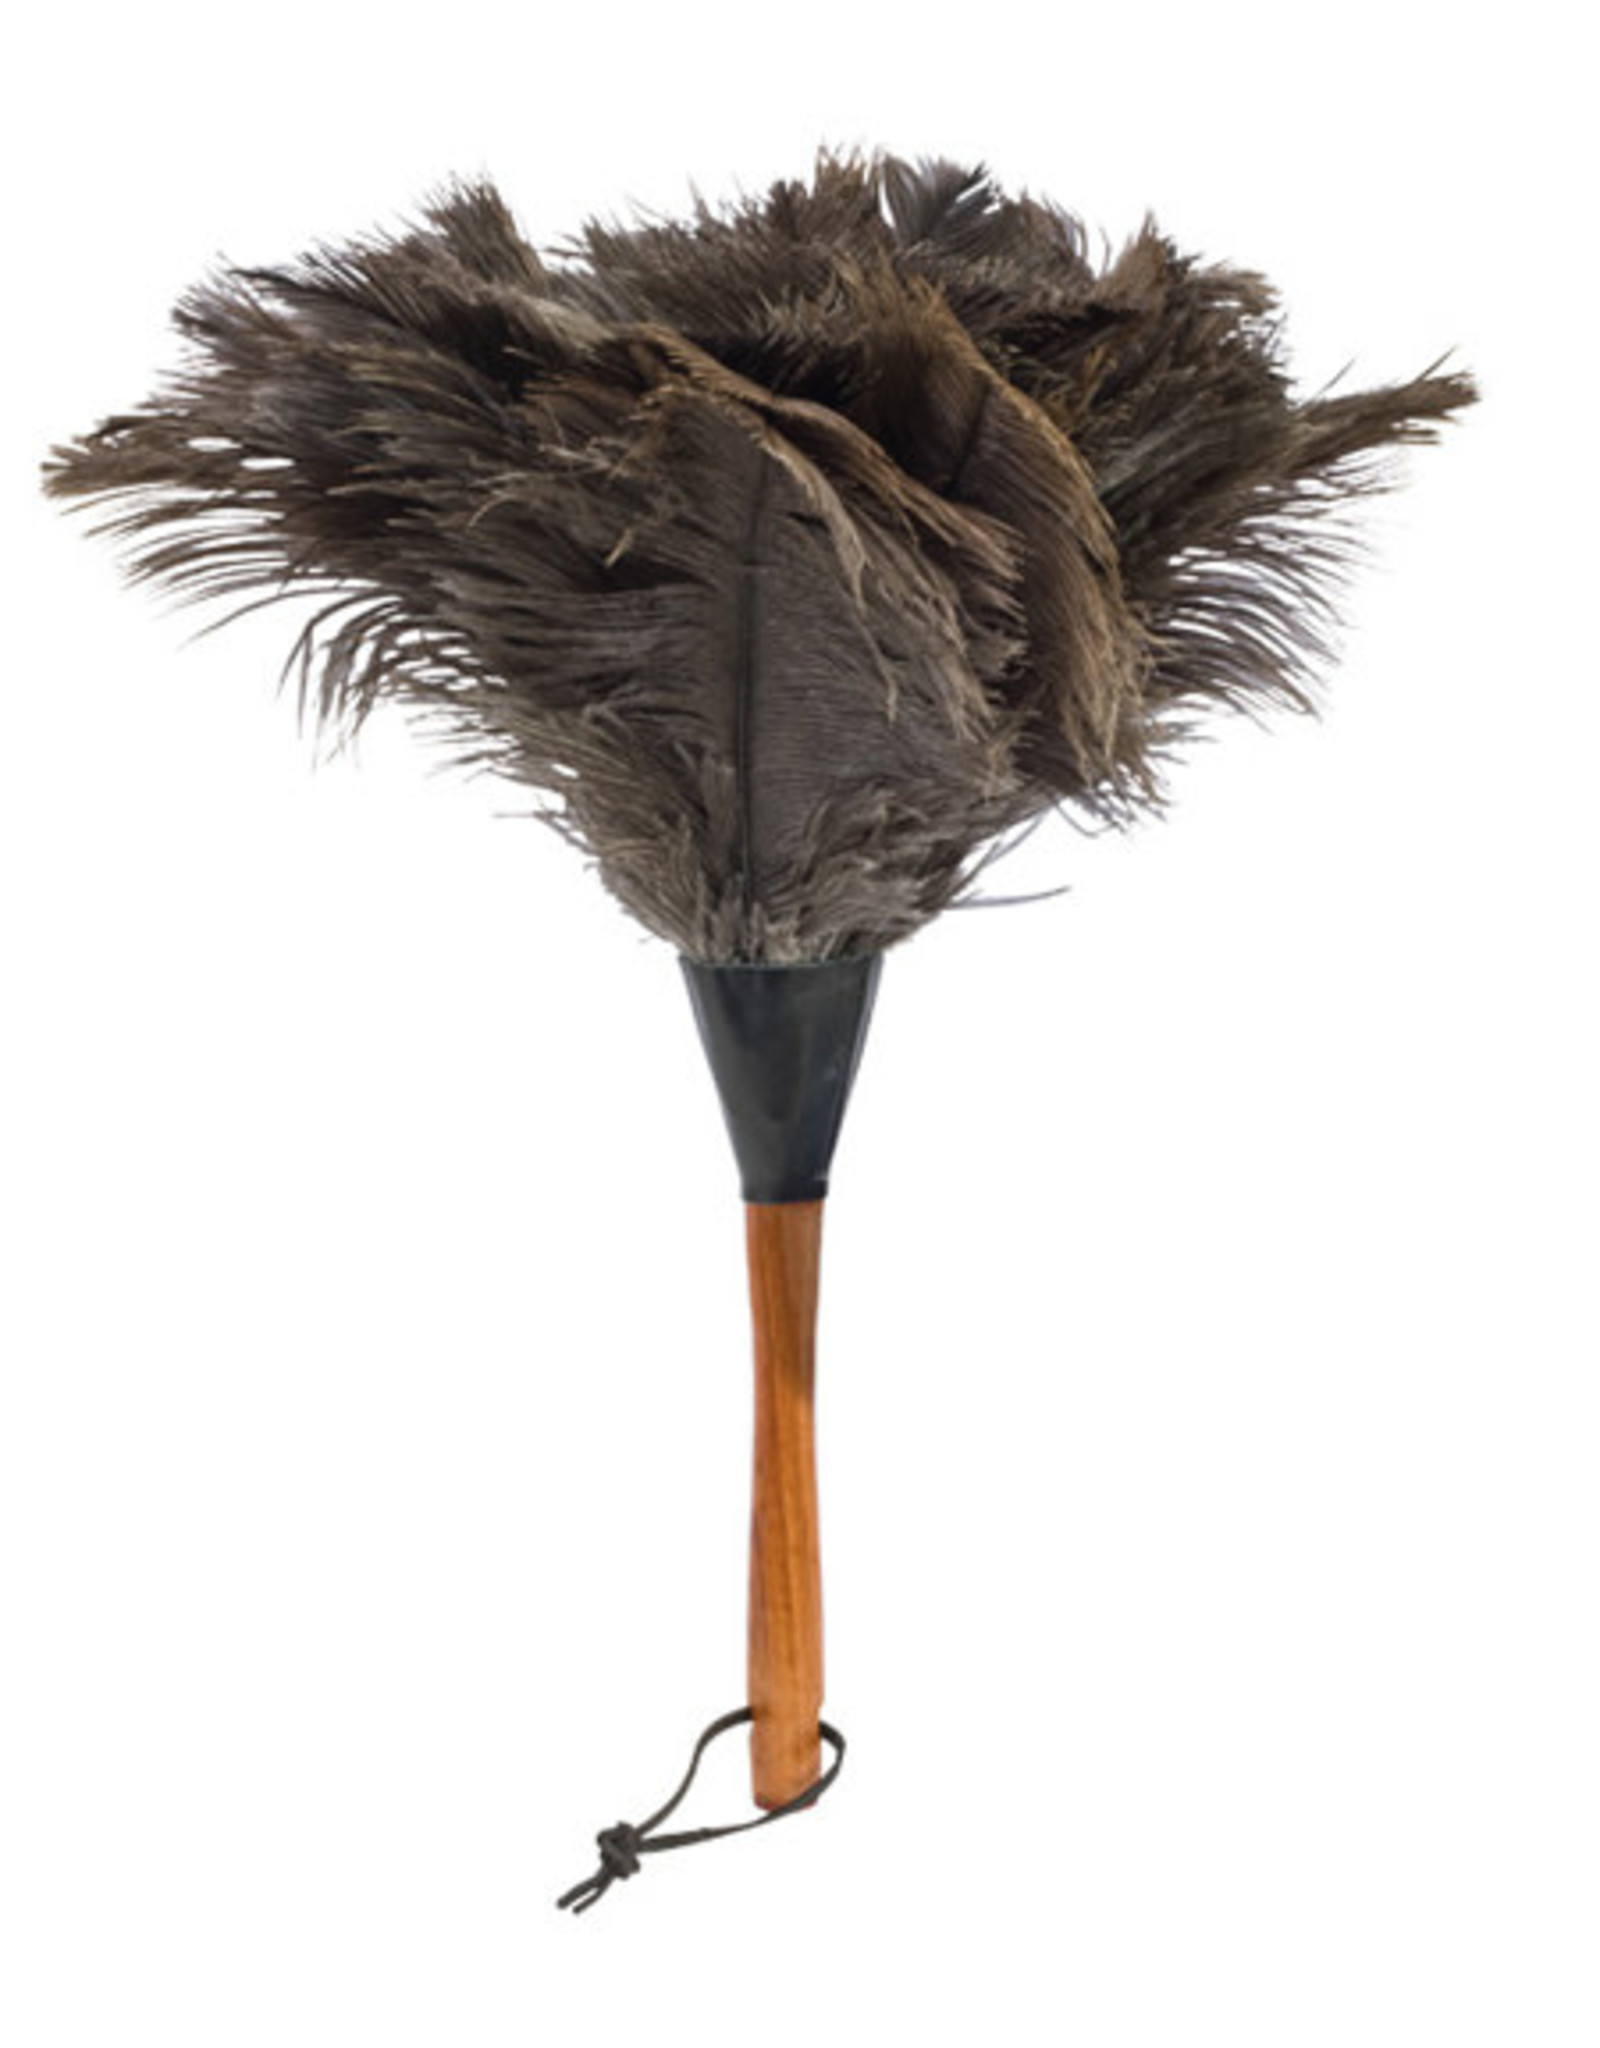 30cm Ostrich Feather Duster